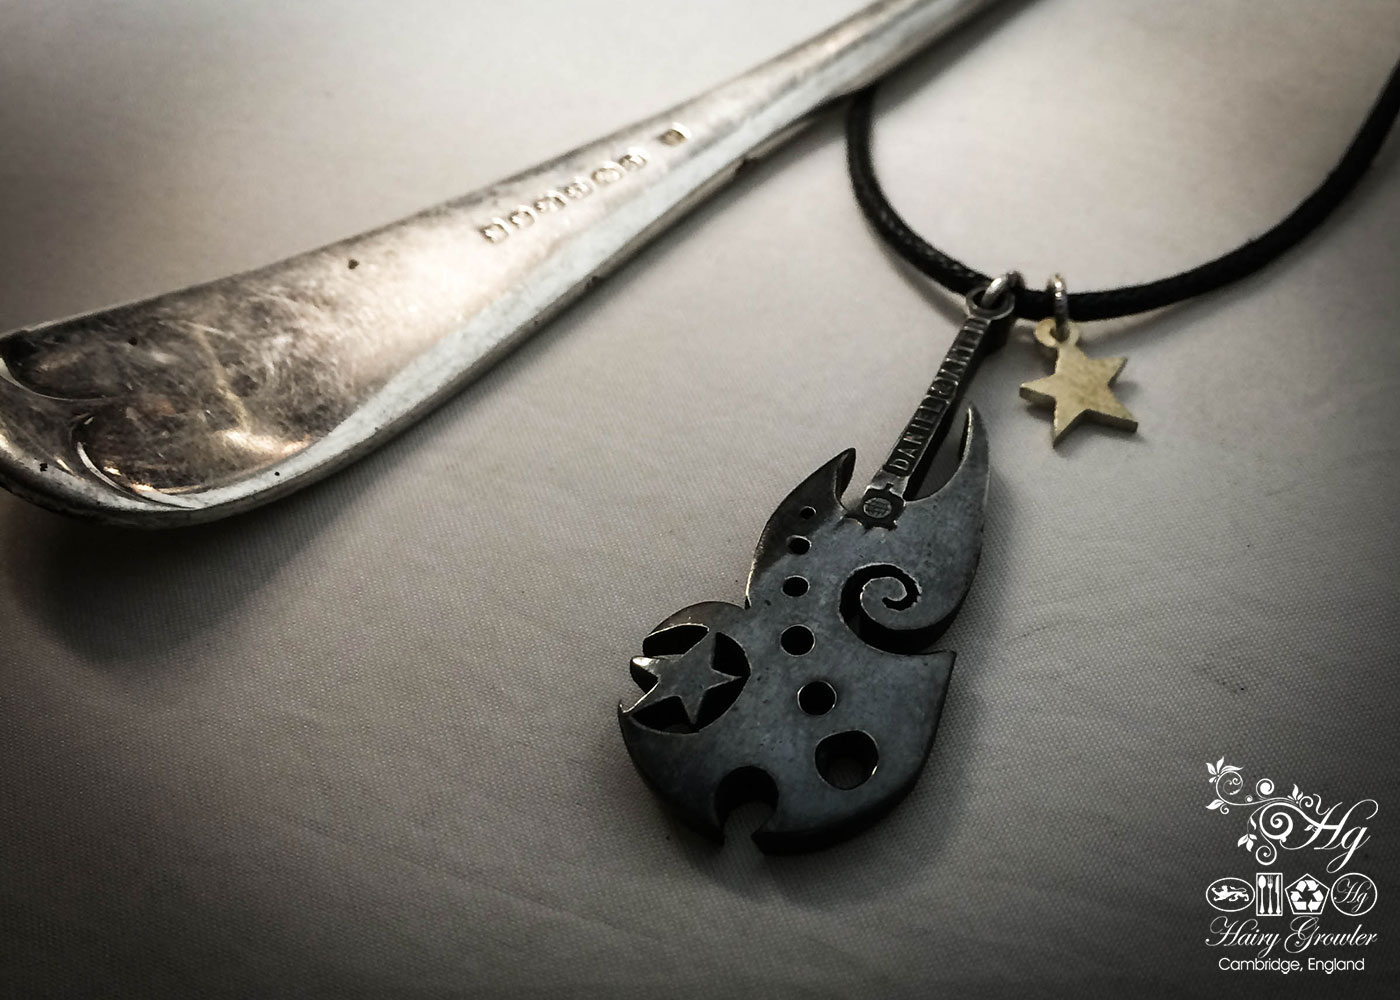 handmade and repurposed spoon black star guitar necklace pendant